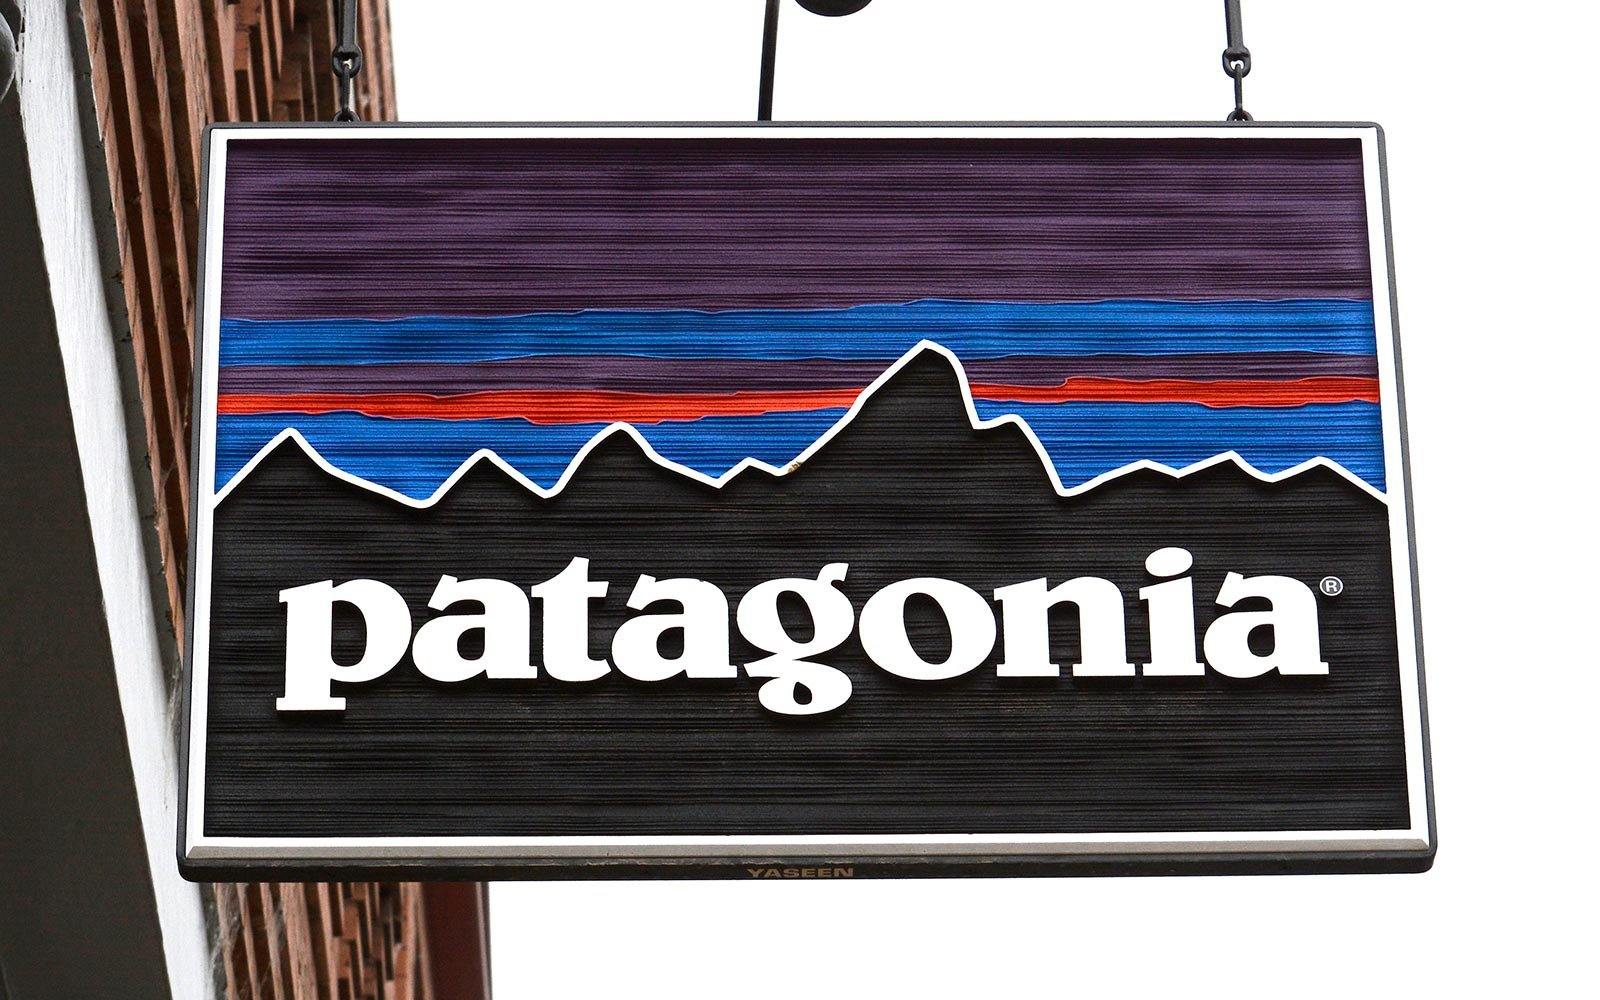 Patagonia donating 100% of Black Friday sales